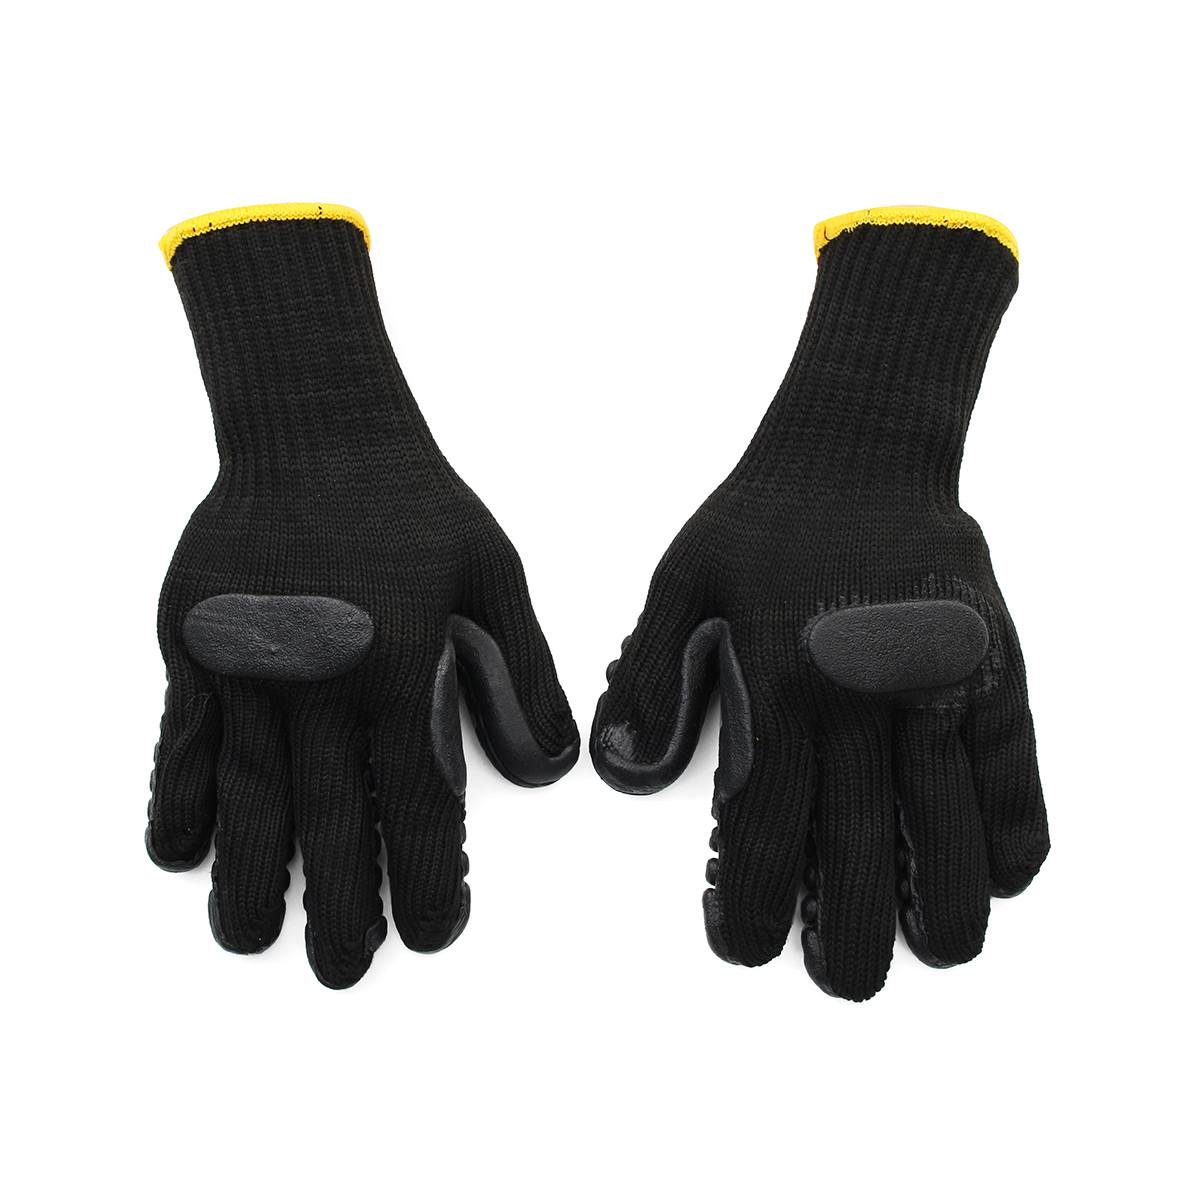 NEW Safurance Anti Vibration Gloves Power Tool Shockproof Reducing Work For Drilling Mine-coal  Workplace Safety